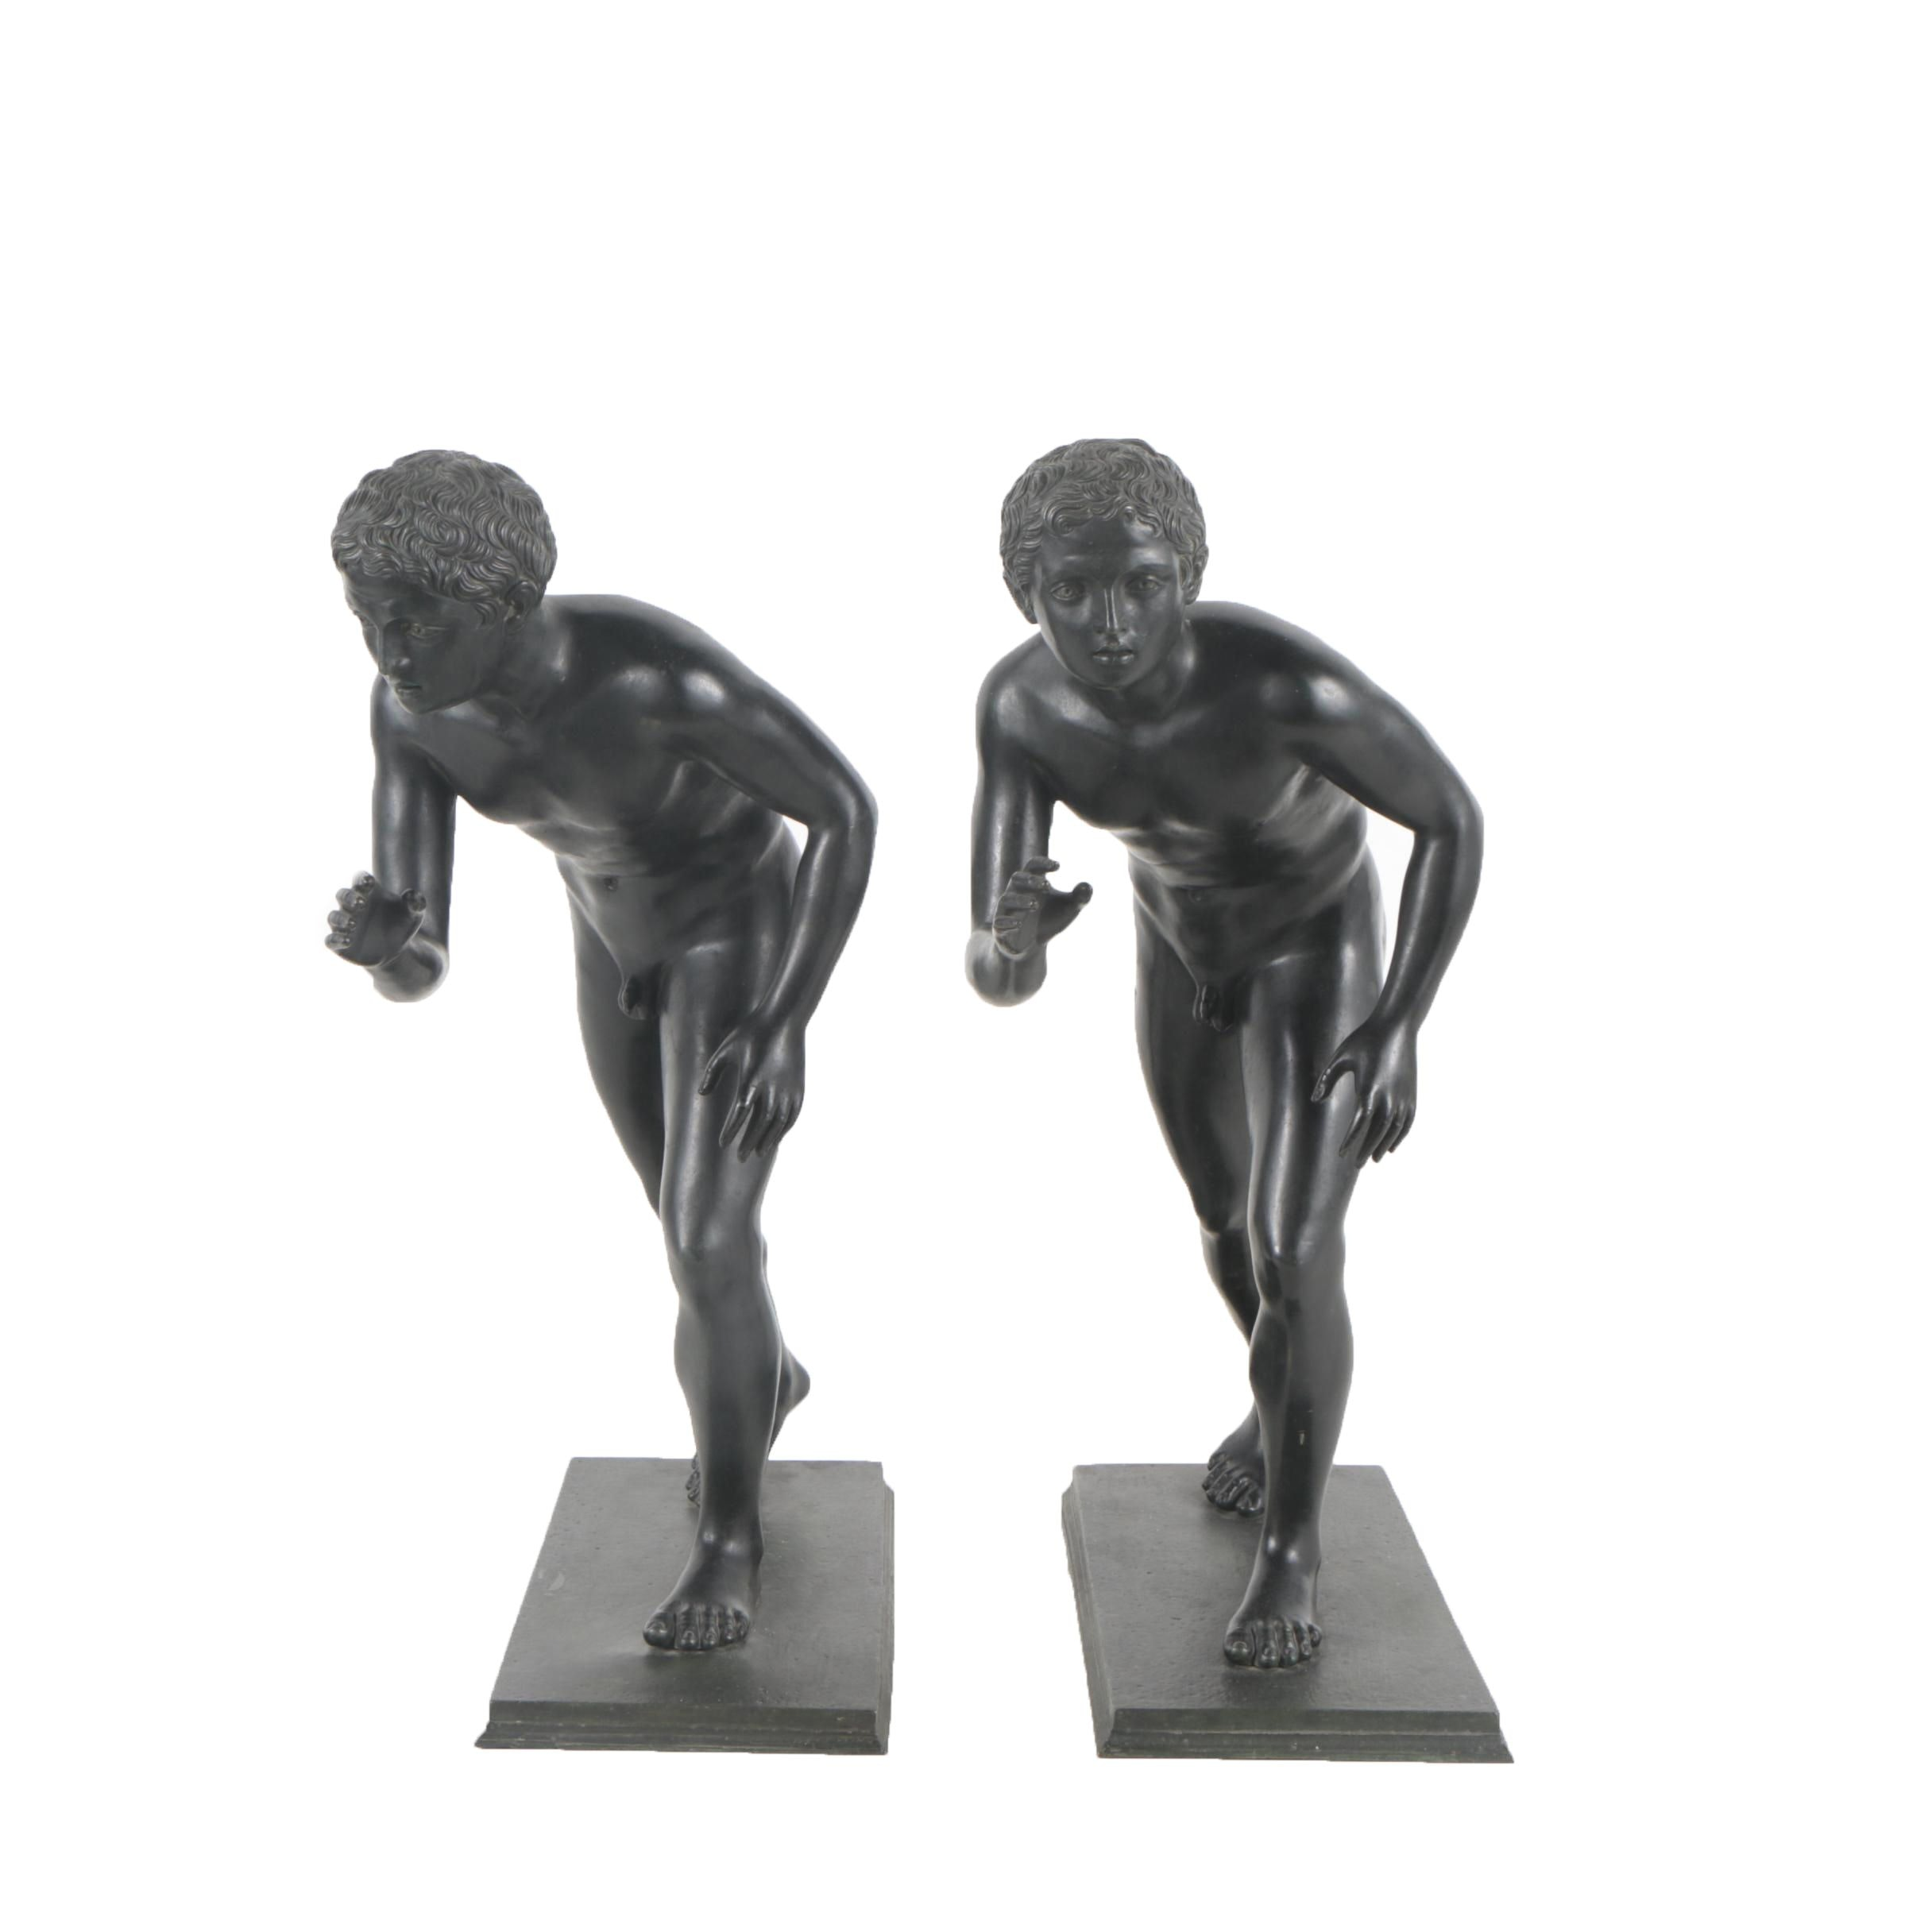 Brass Reproduction Sculptures of Classical Athlete Figures